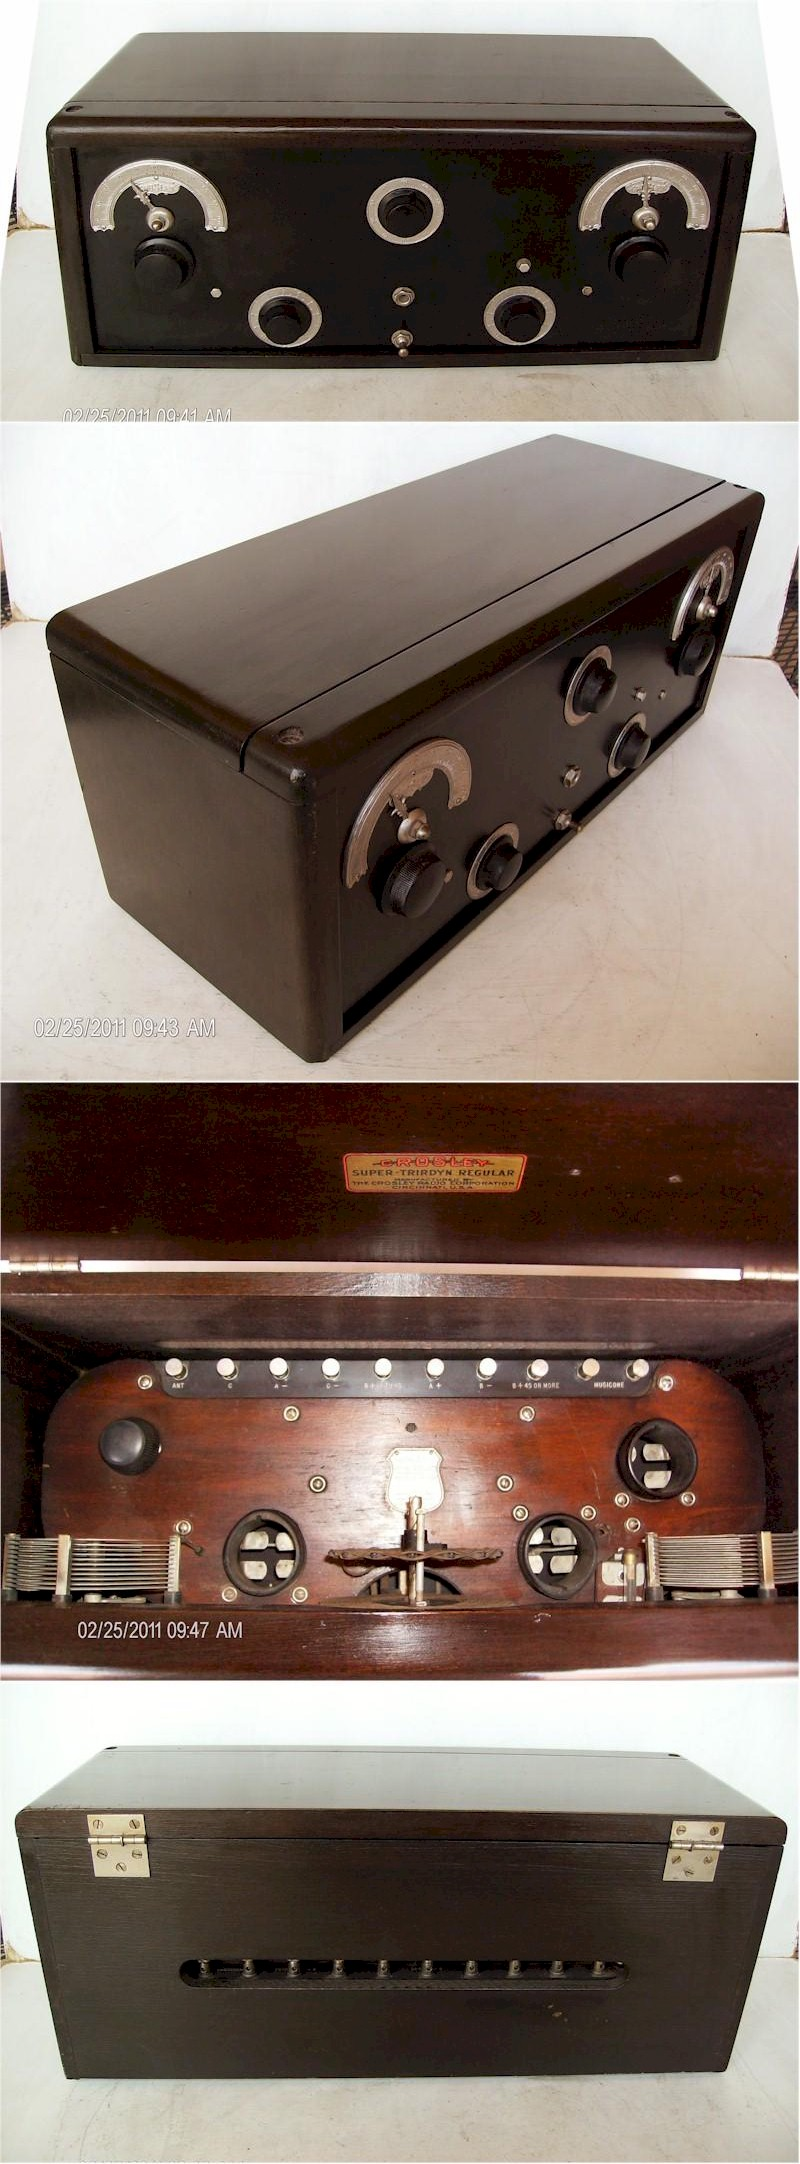 Crosley Trirdyn Super Regular